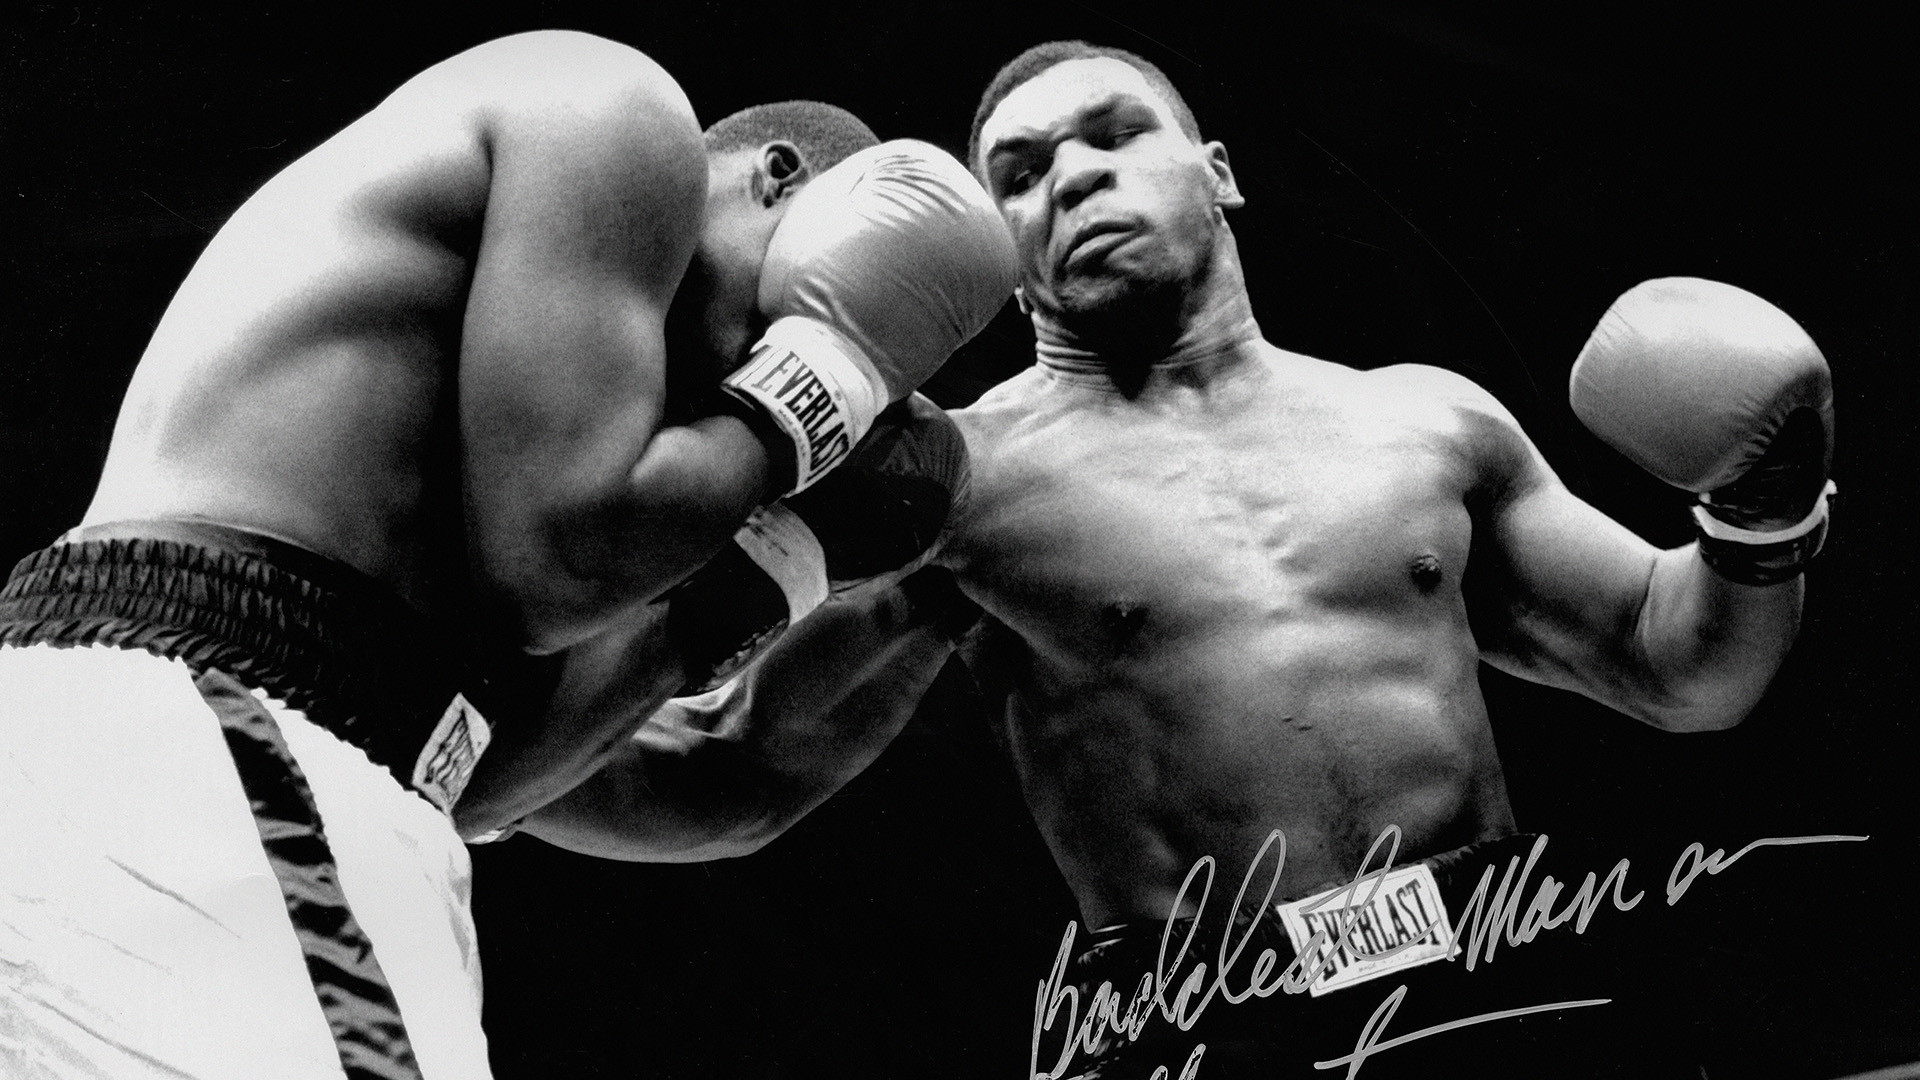 Mike Tyson HD Wallpaper – HD Wallpapers Backgrounds of Your Choice